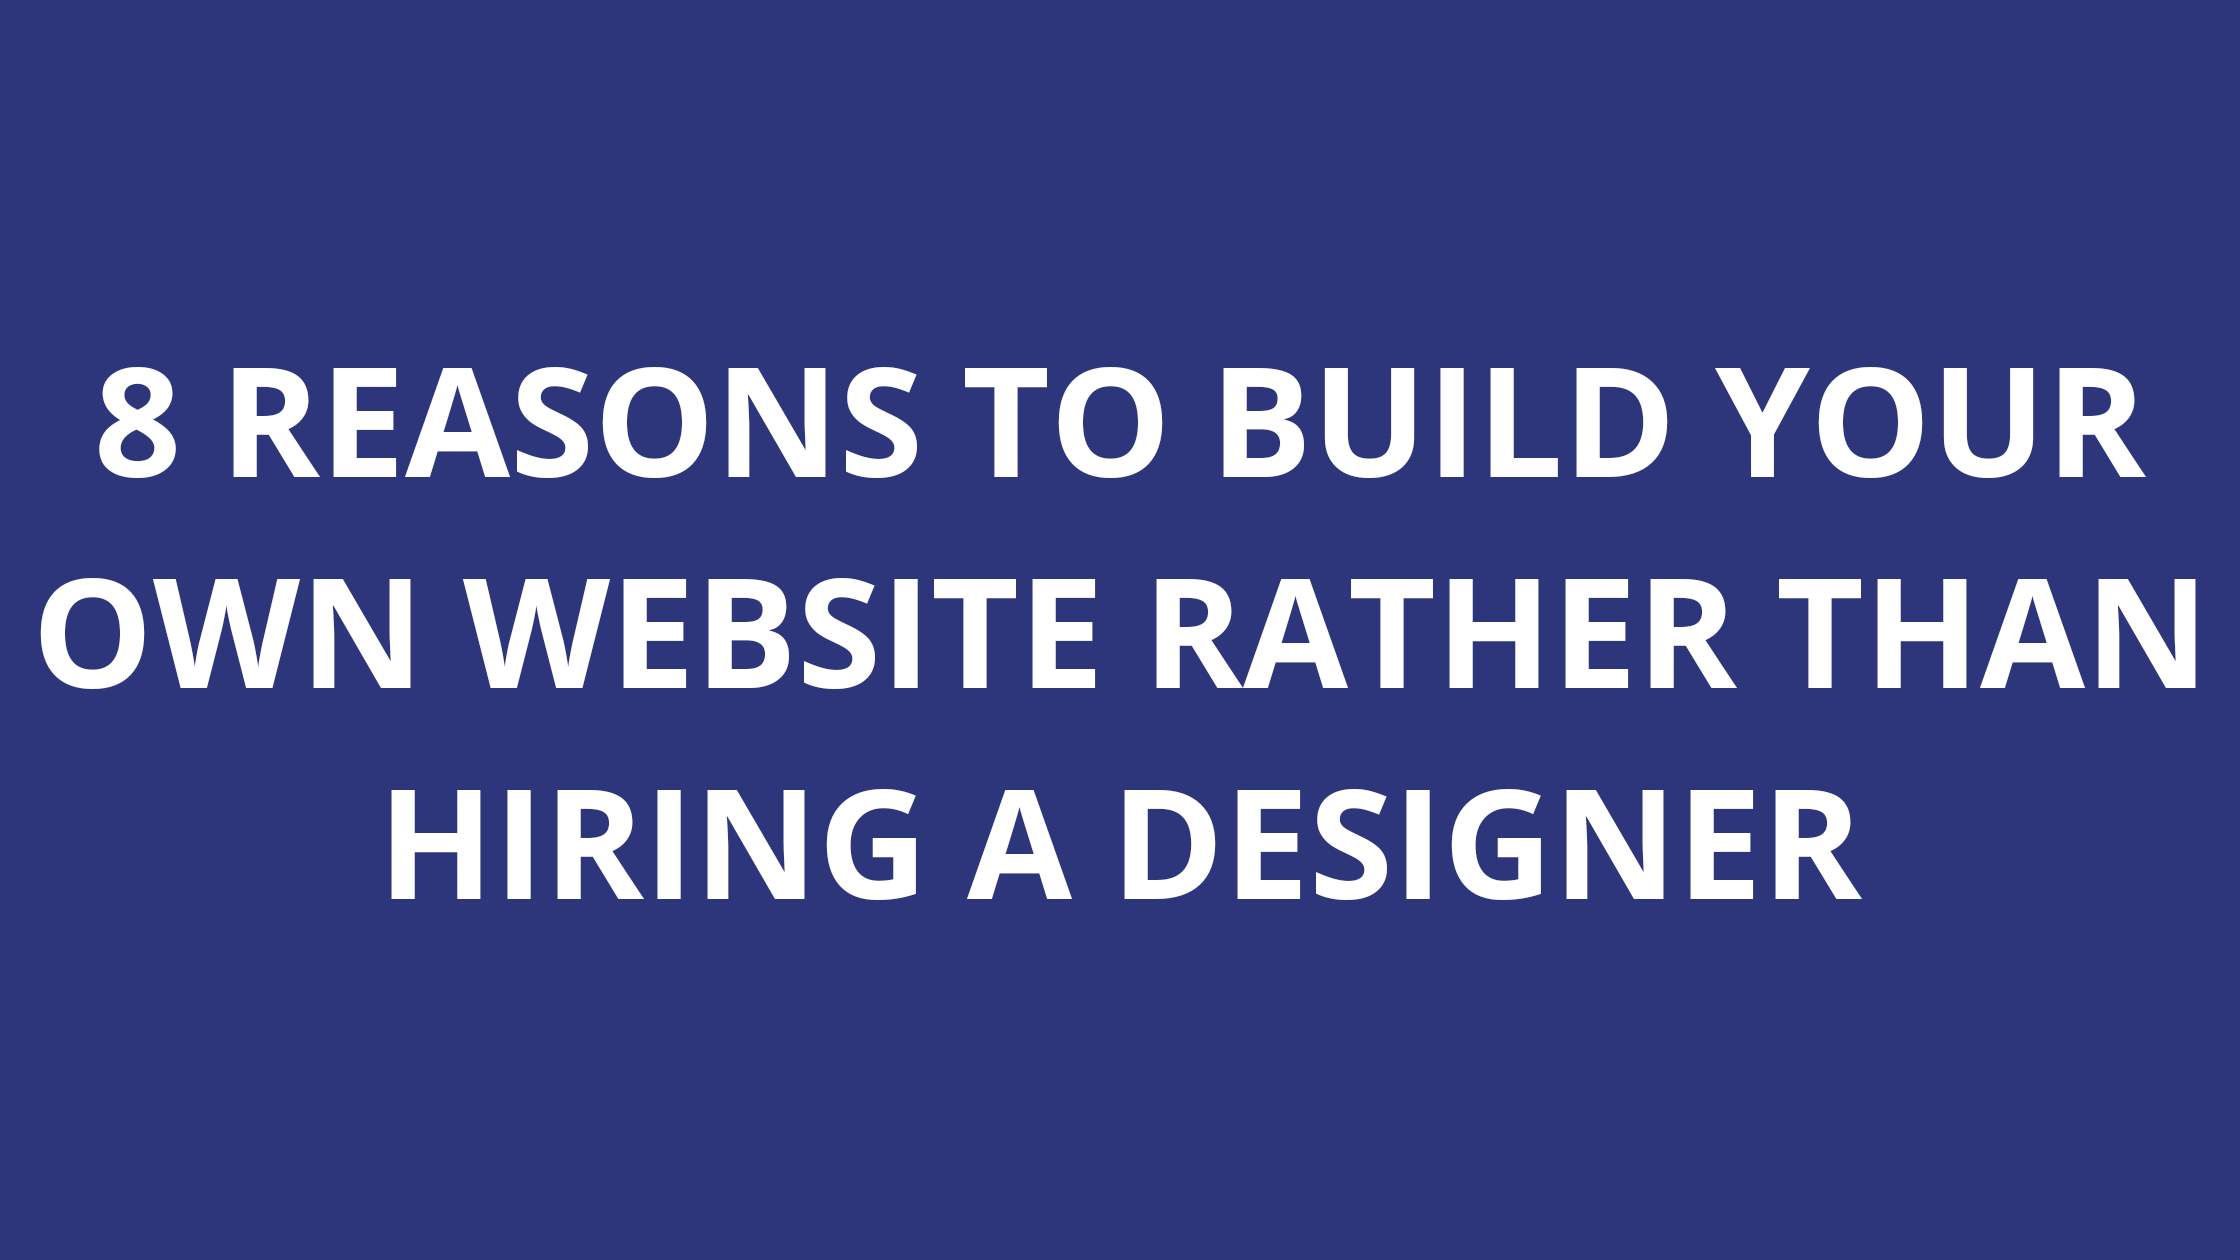 Build Your Own Website Rather Than Hiring a Design